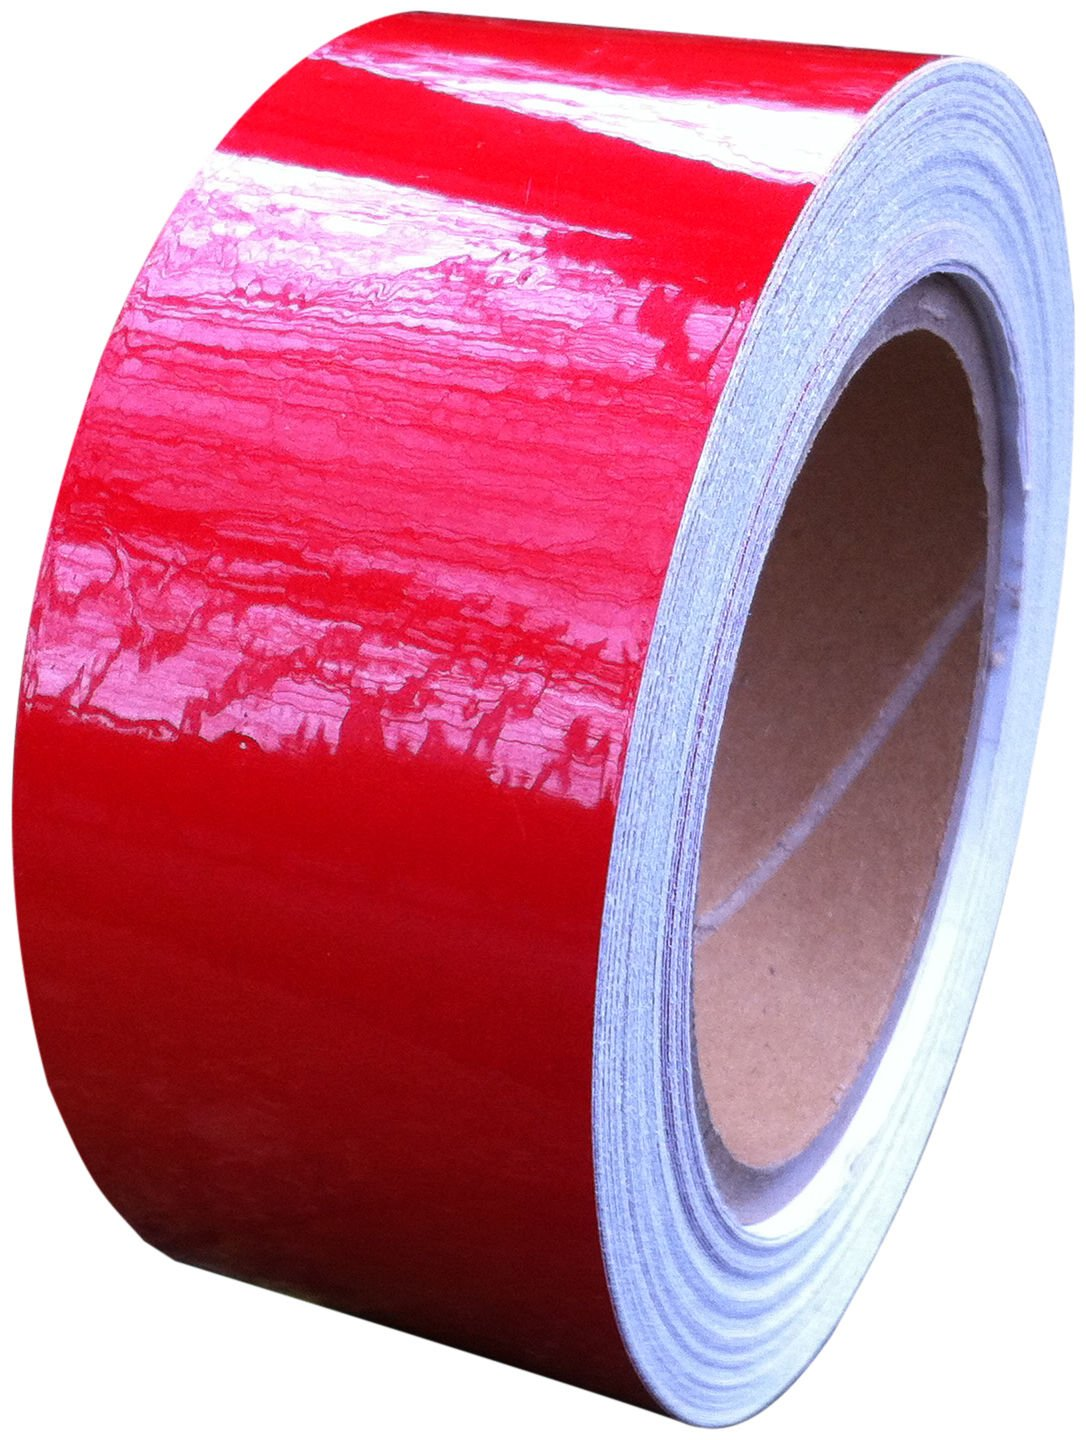 Cinta reflectante roja, 50  mm x 10  m  –   resistente al agua fuerte Direct Products